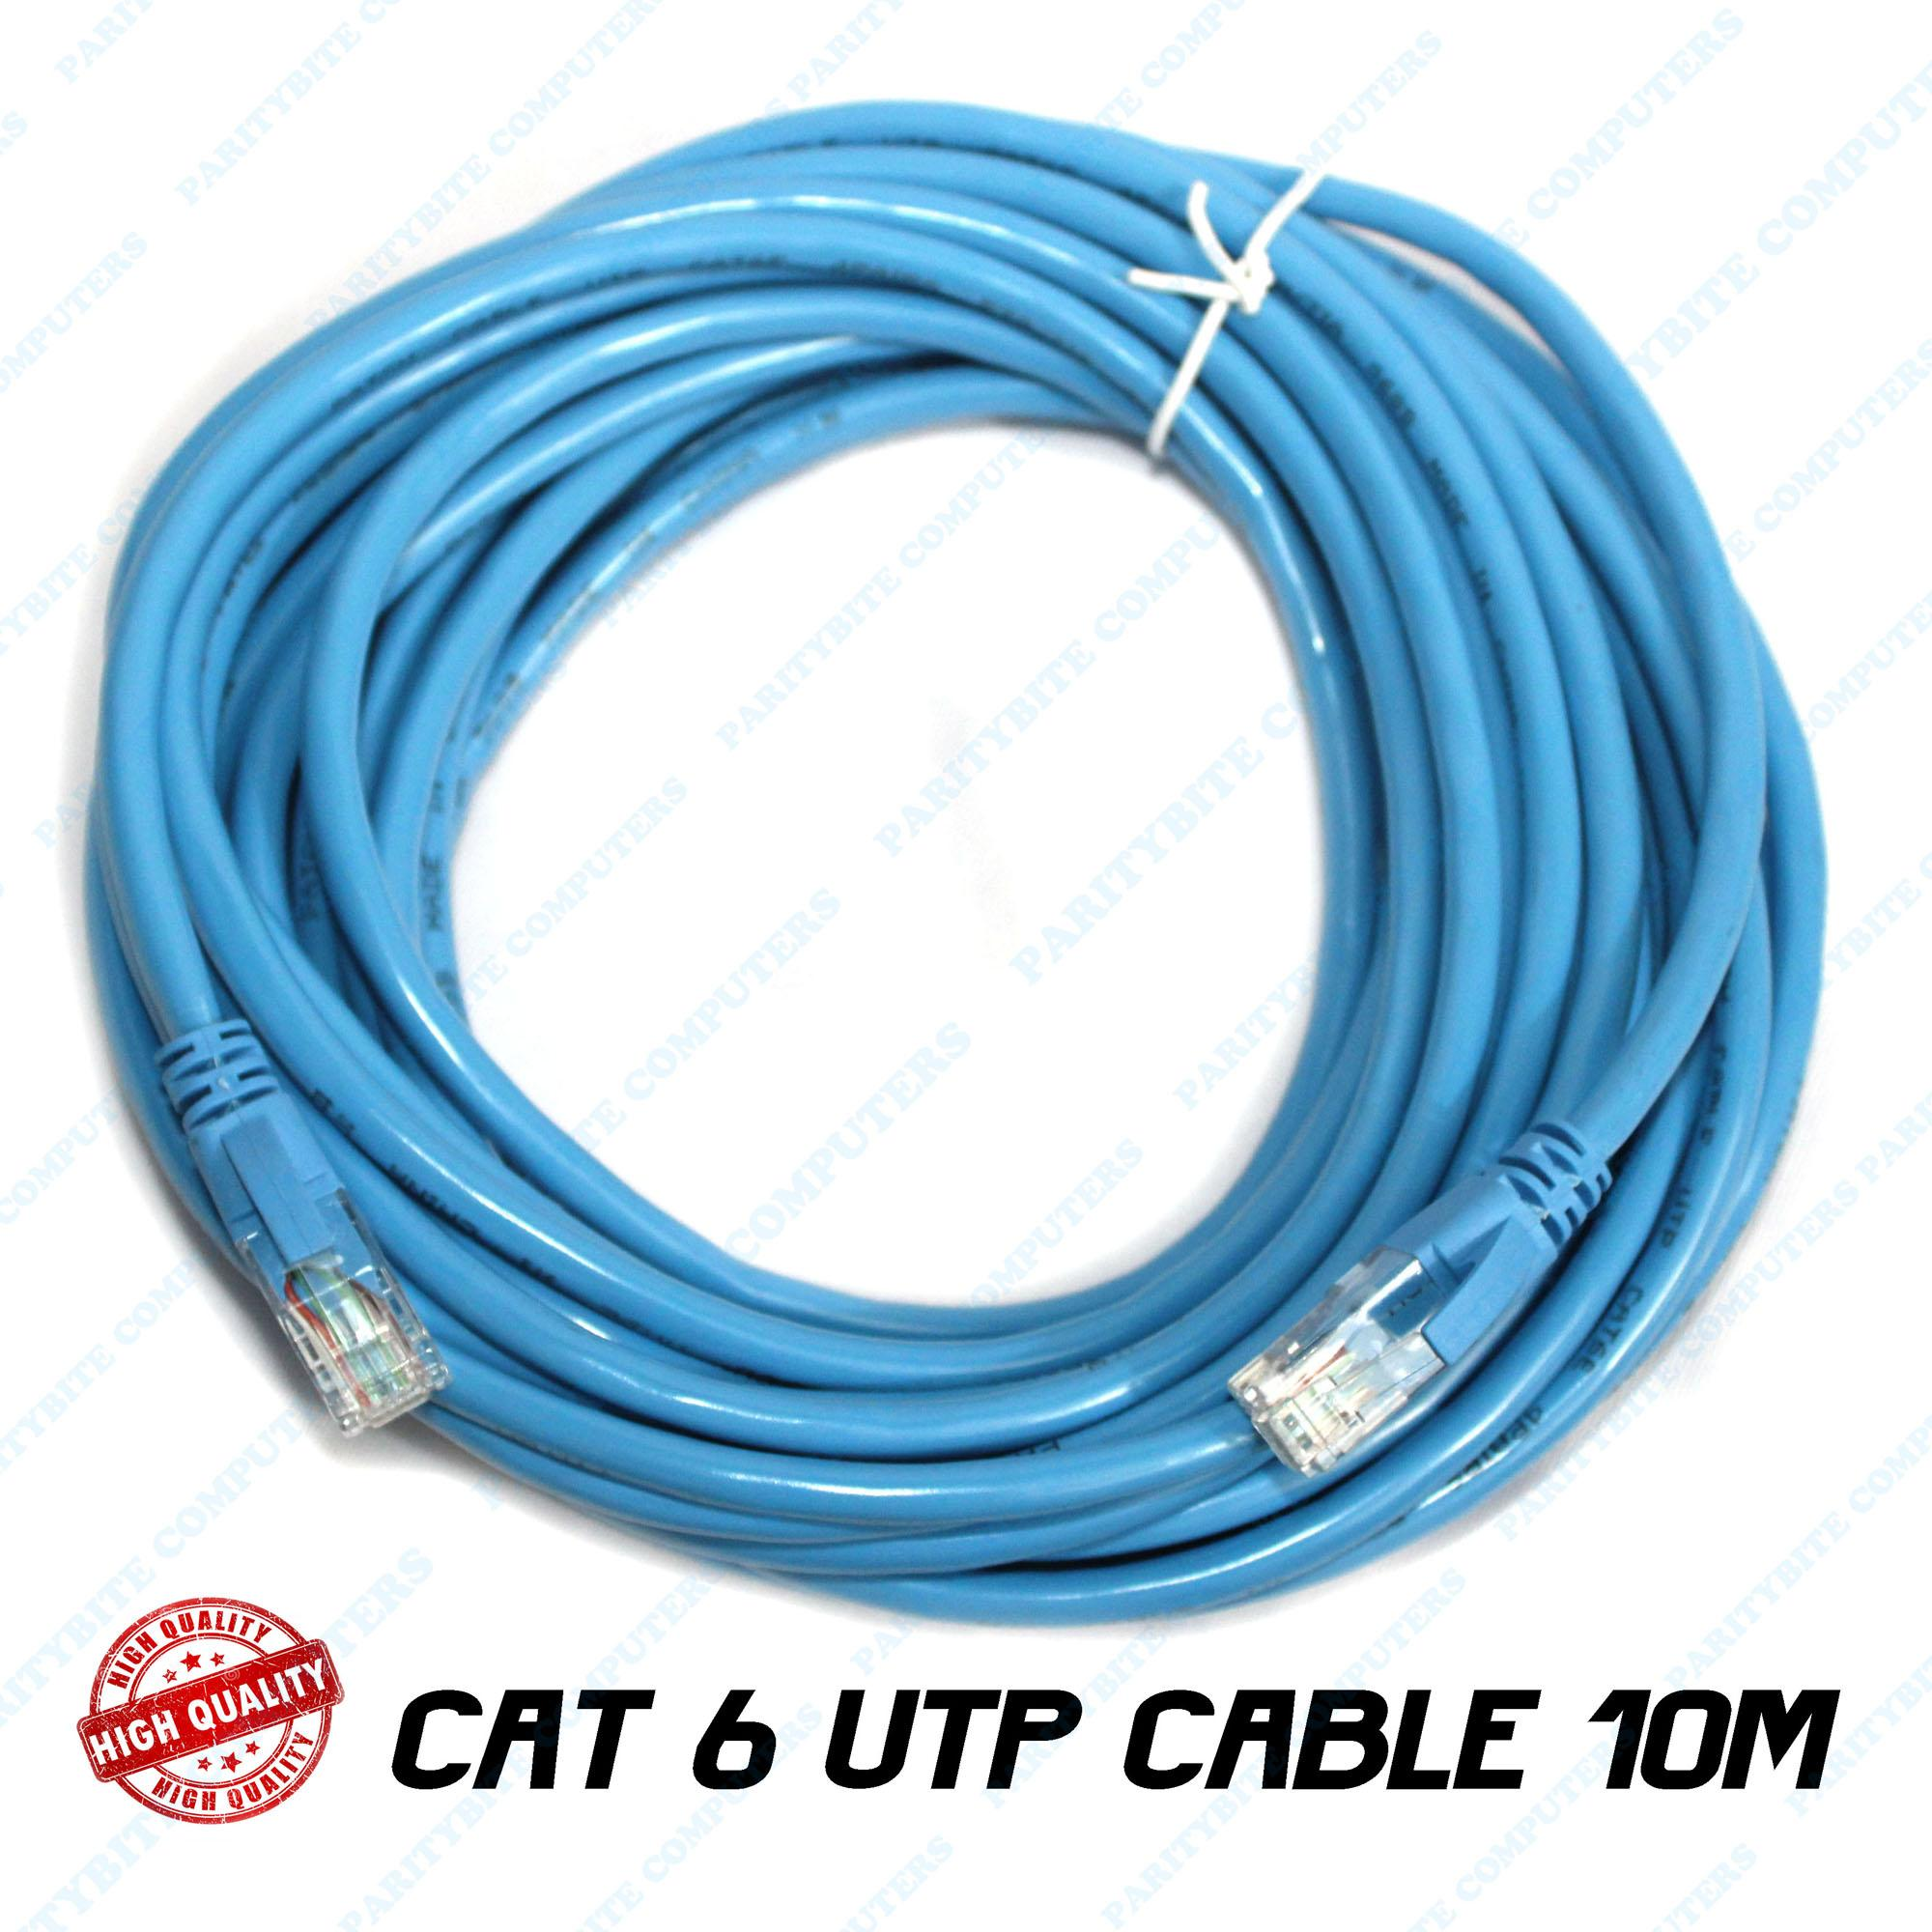 Ethernet Cable For Sale Etherner Adapters Prices Brands Specs Utp Wiring Patch Cord With Rj45 Cat6 10m